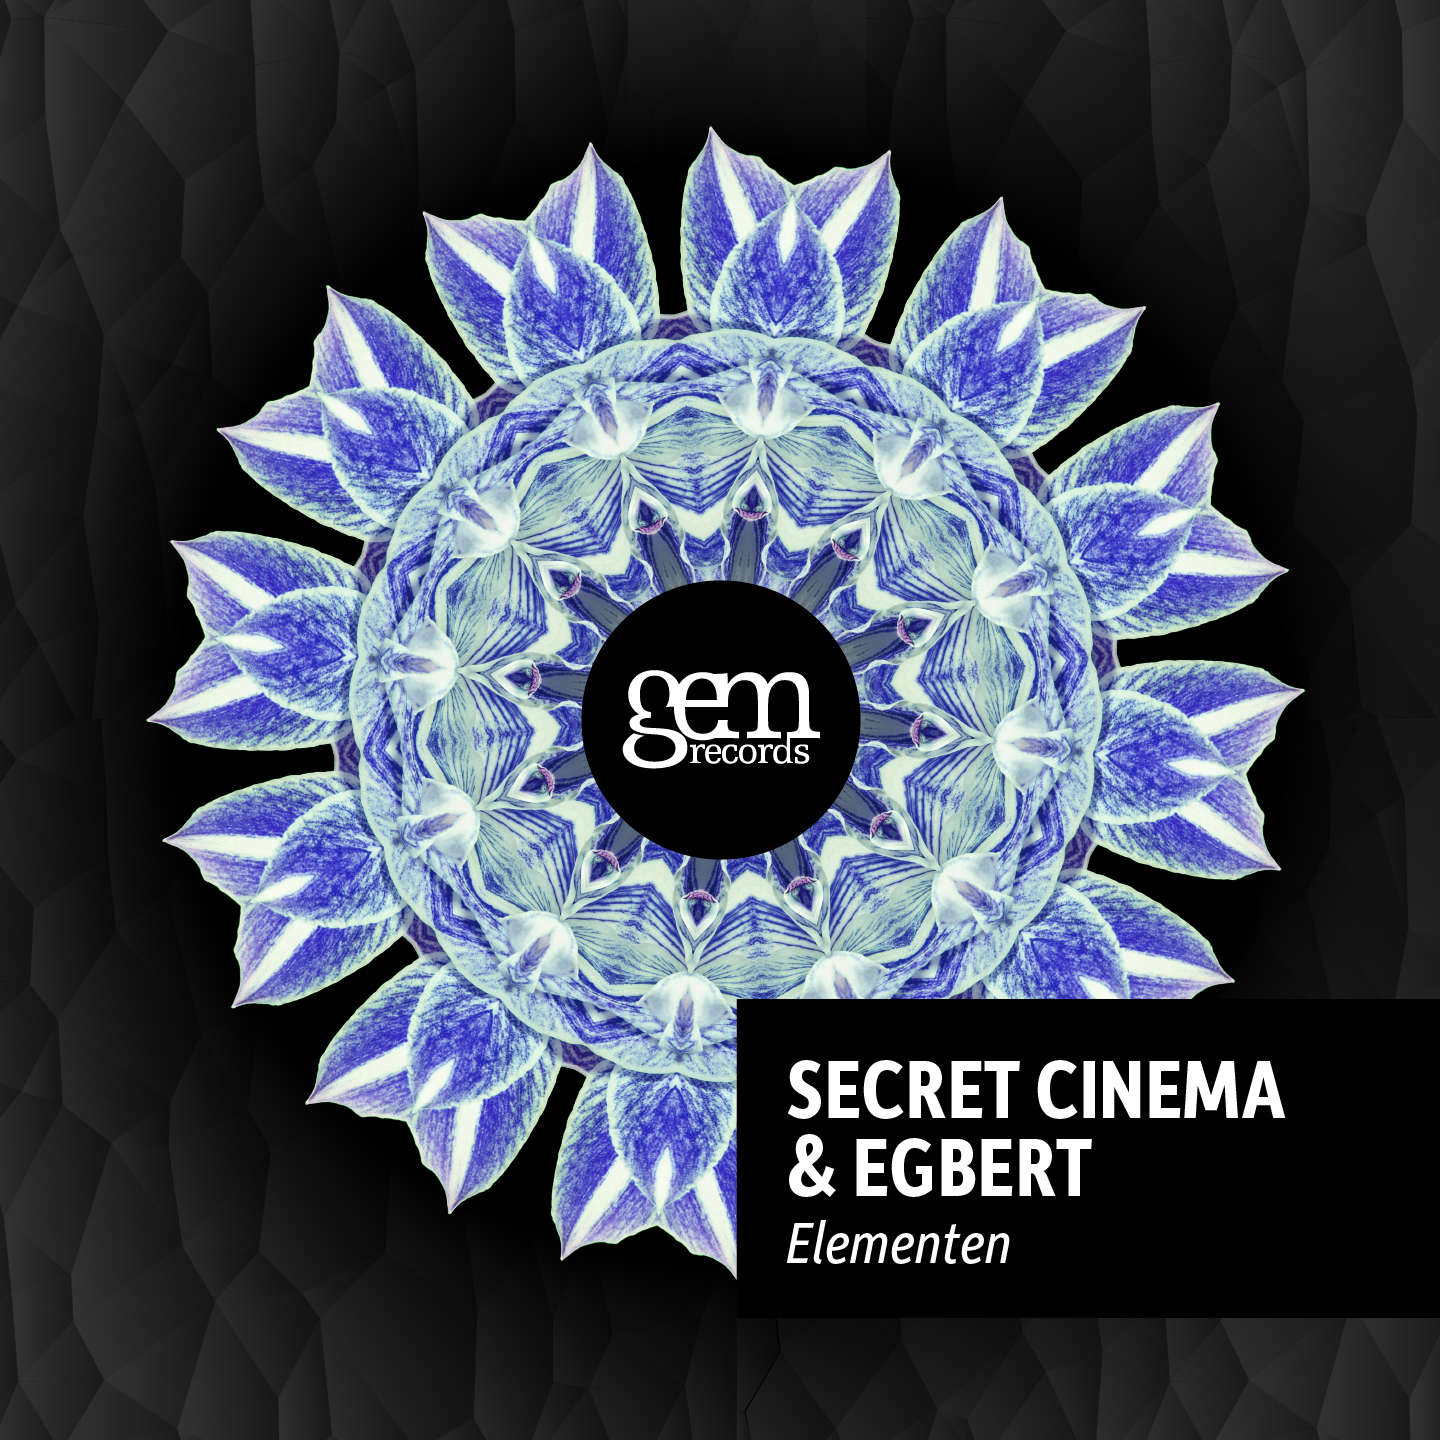 Secret Cinema & Egbert – Elementen (Gem Records)